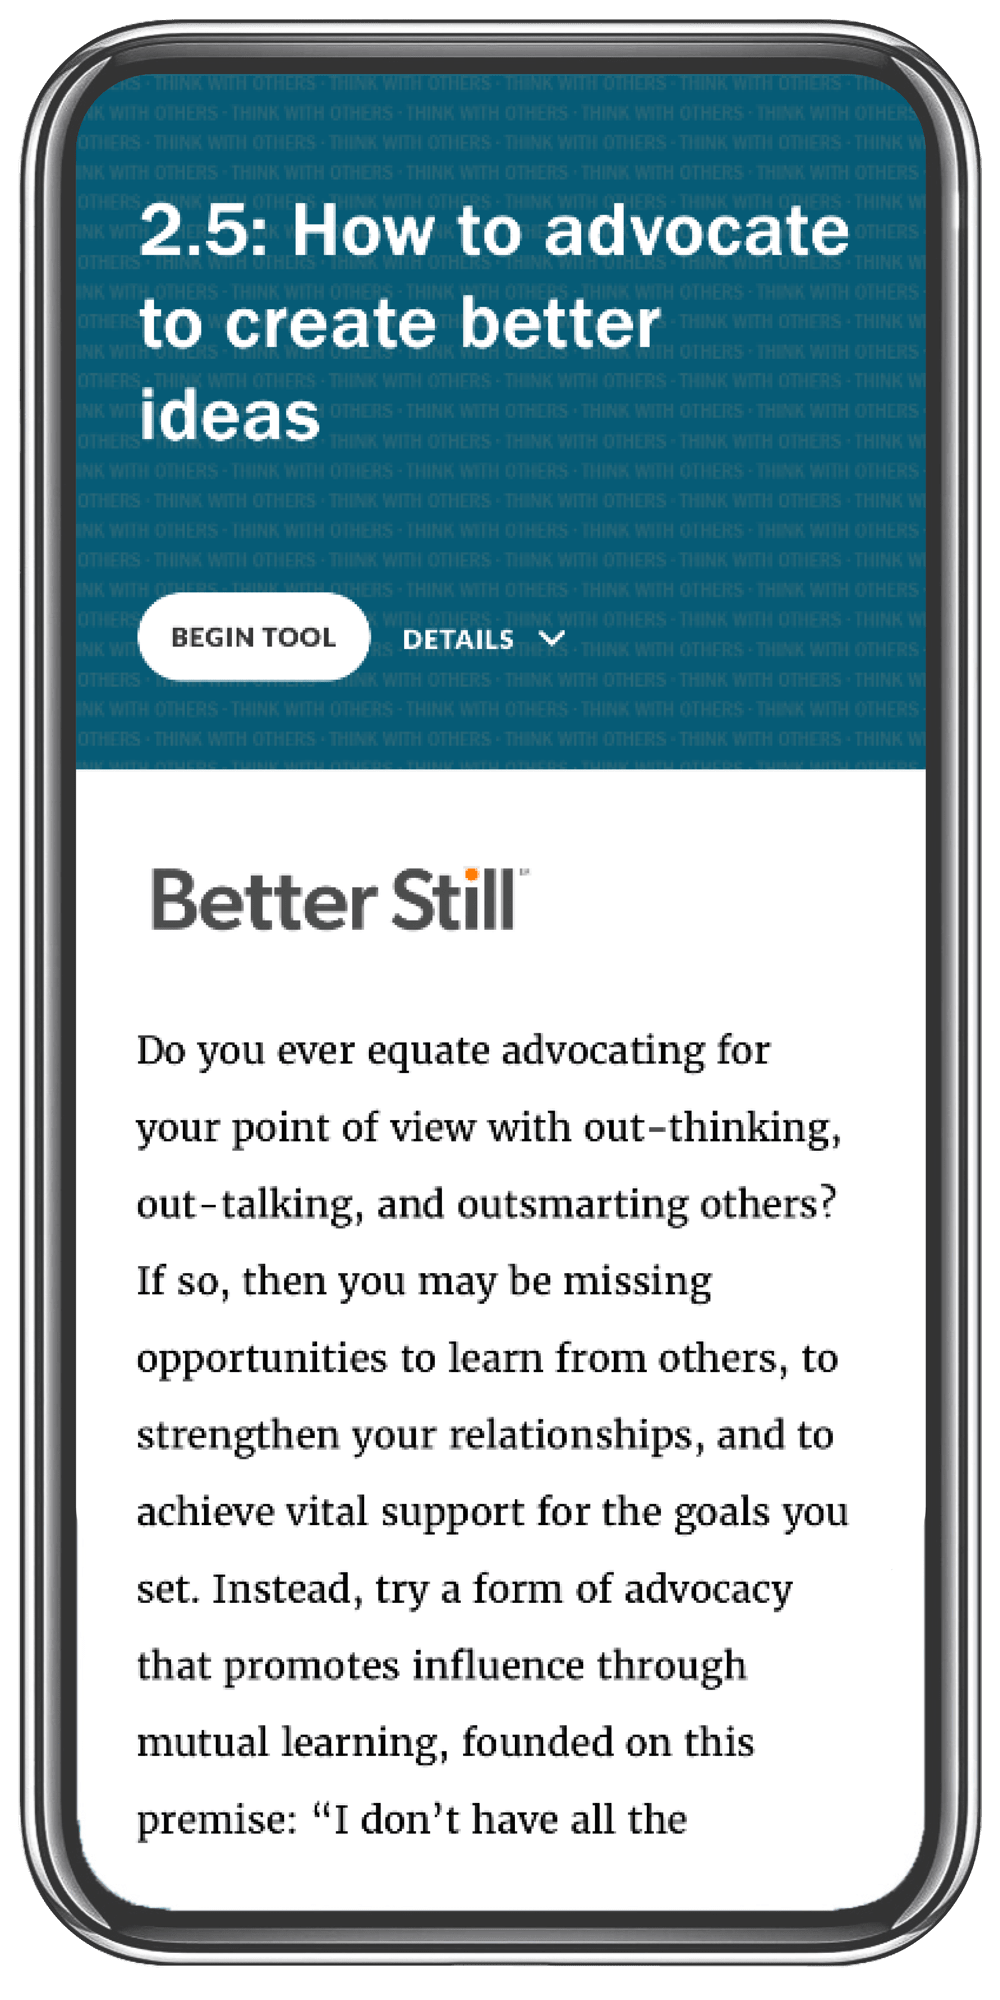 Better Still Tool 2.5 How to Advocate to Create Better Ideas image